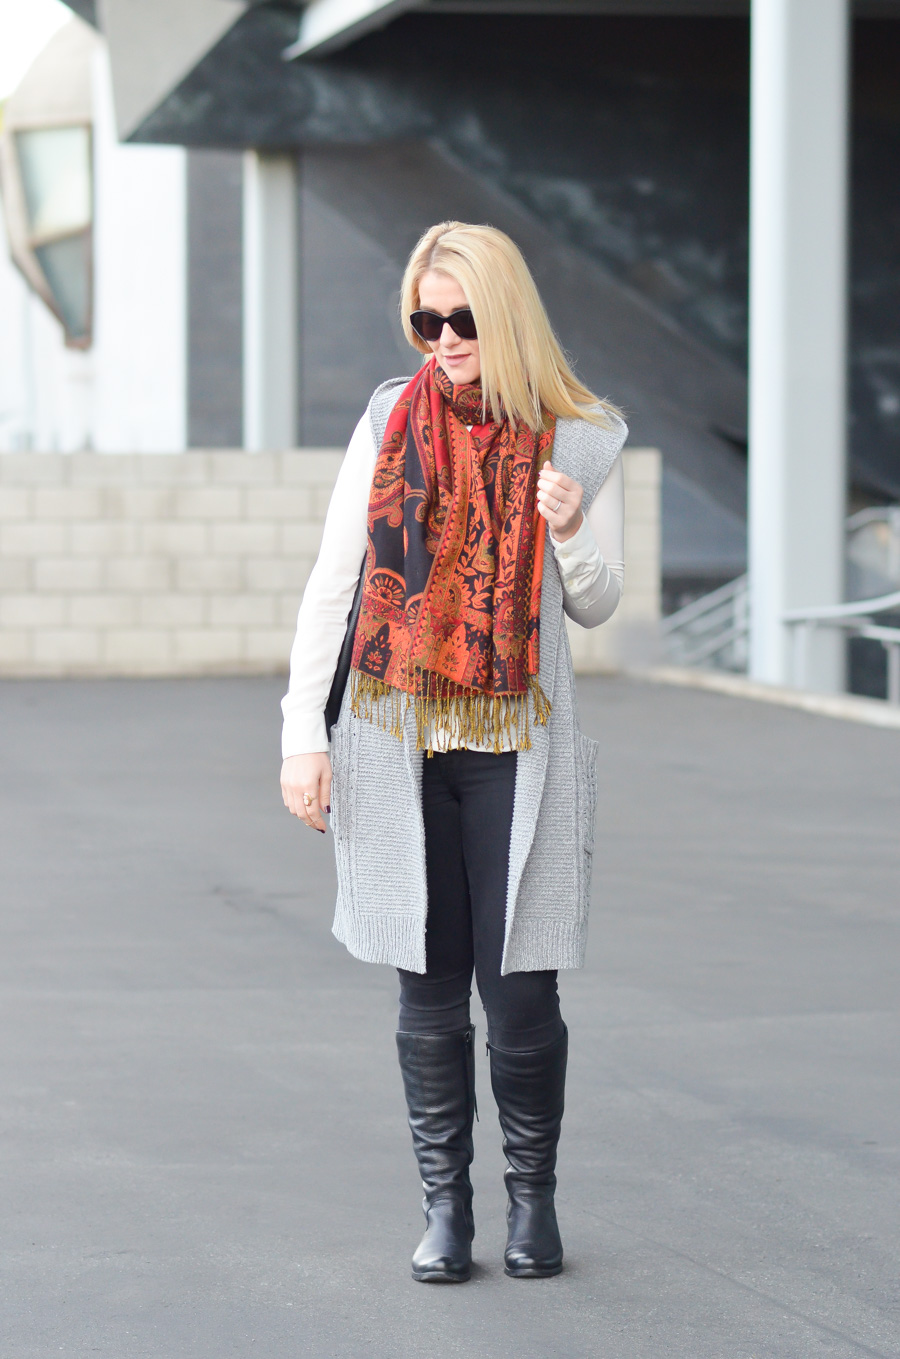 Long Sweater Vest Outfit. Silver Jeans + Black Skinny Denim tucked into Boots.